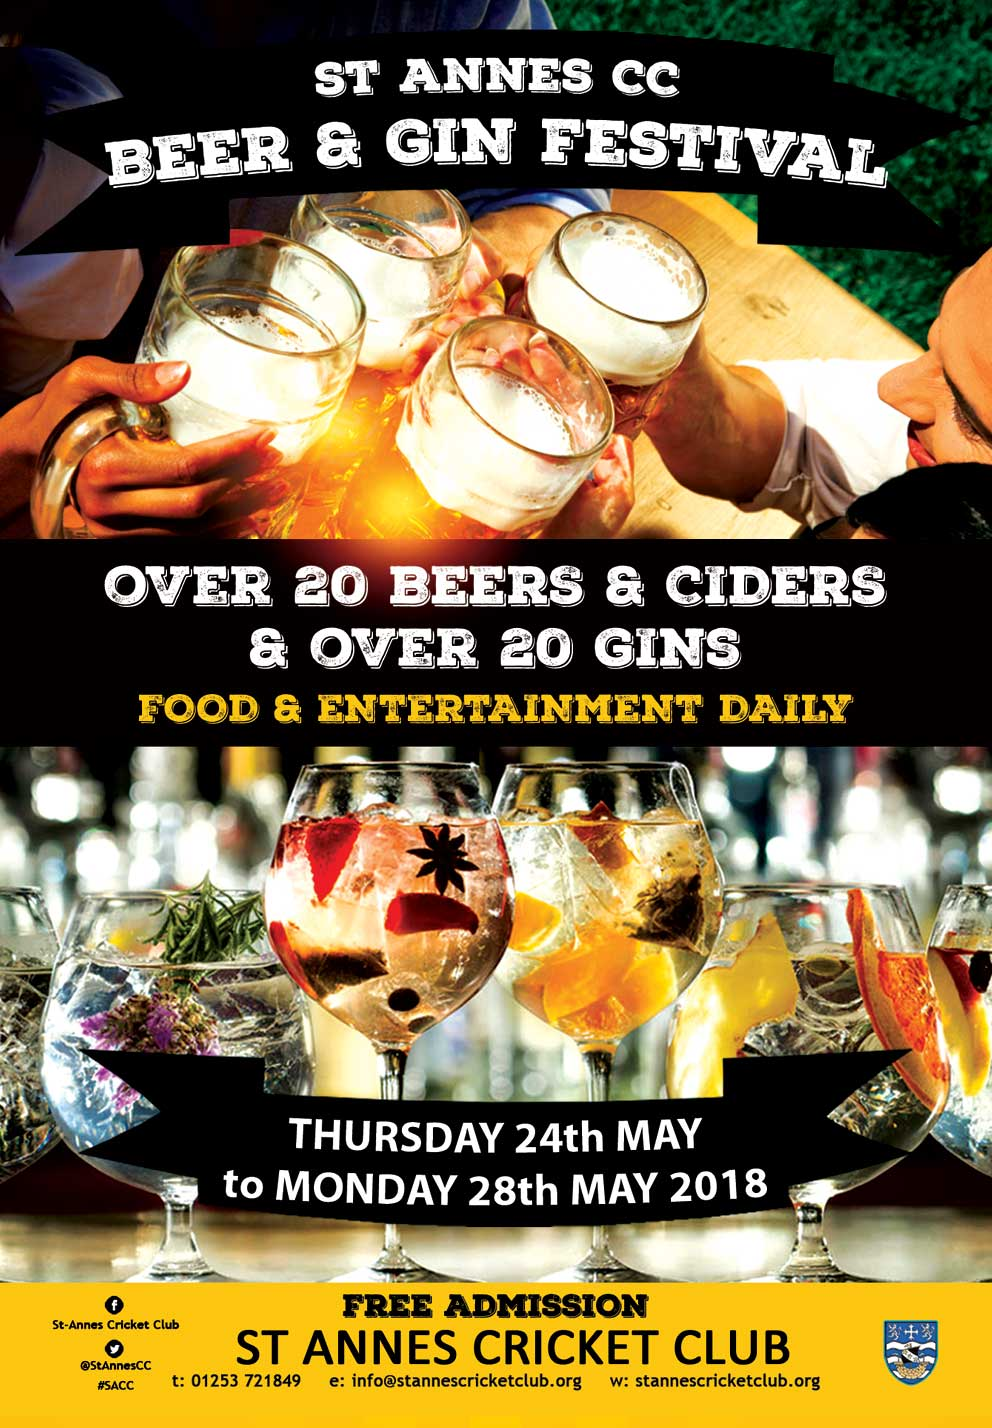 St Annes CC Beer & Gin Festival 24-28 May 2018